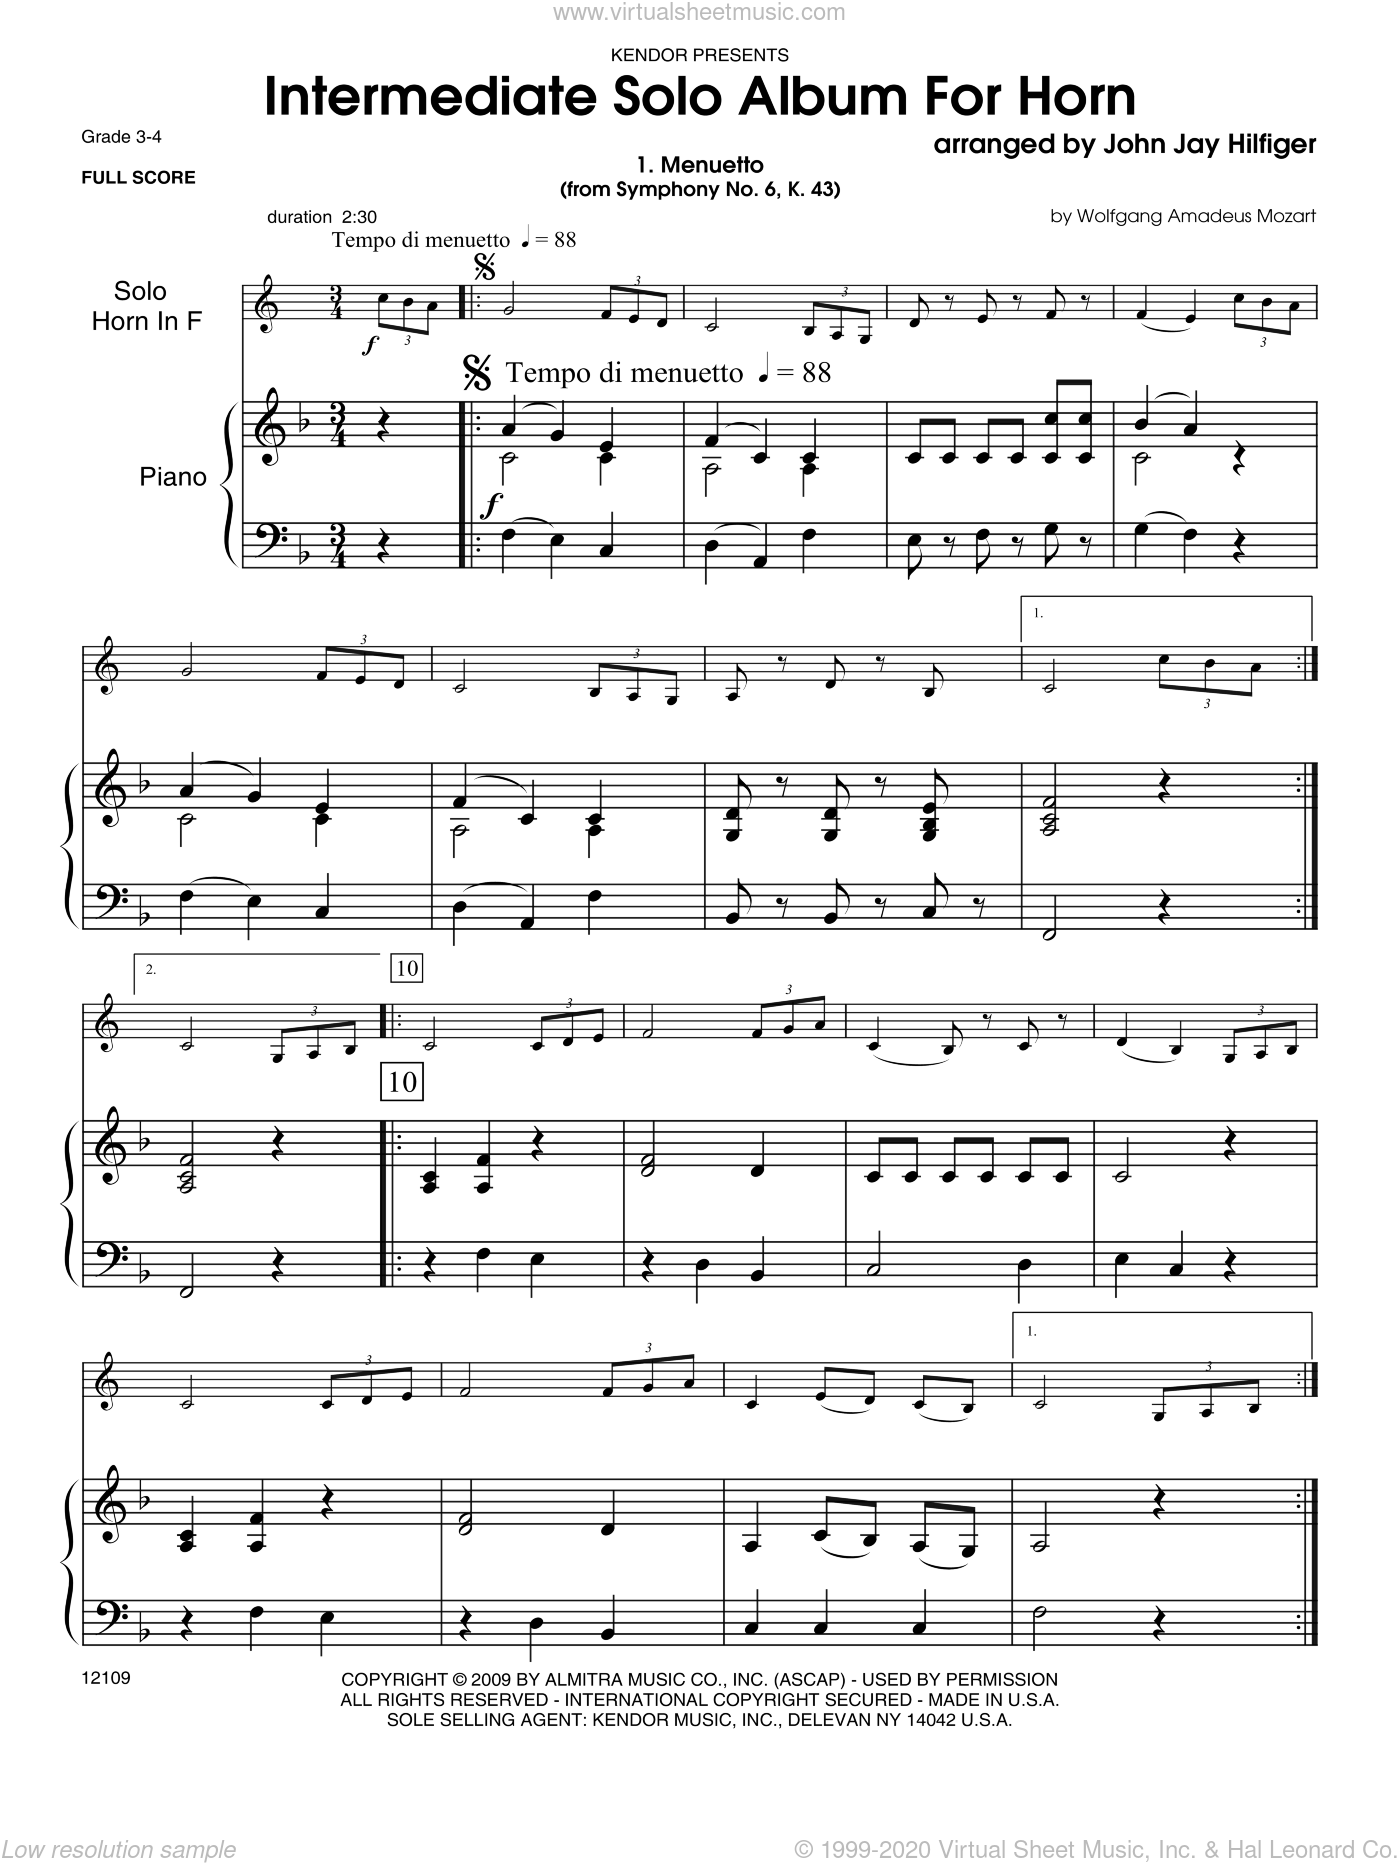 Intermediate Solo Album For Horn sheet music for horn and piano (piano/score) by Hilfiger